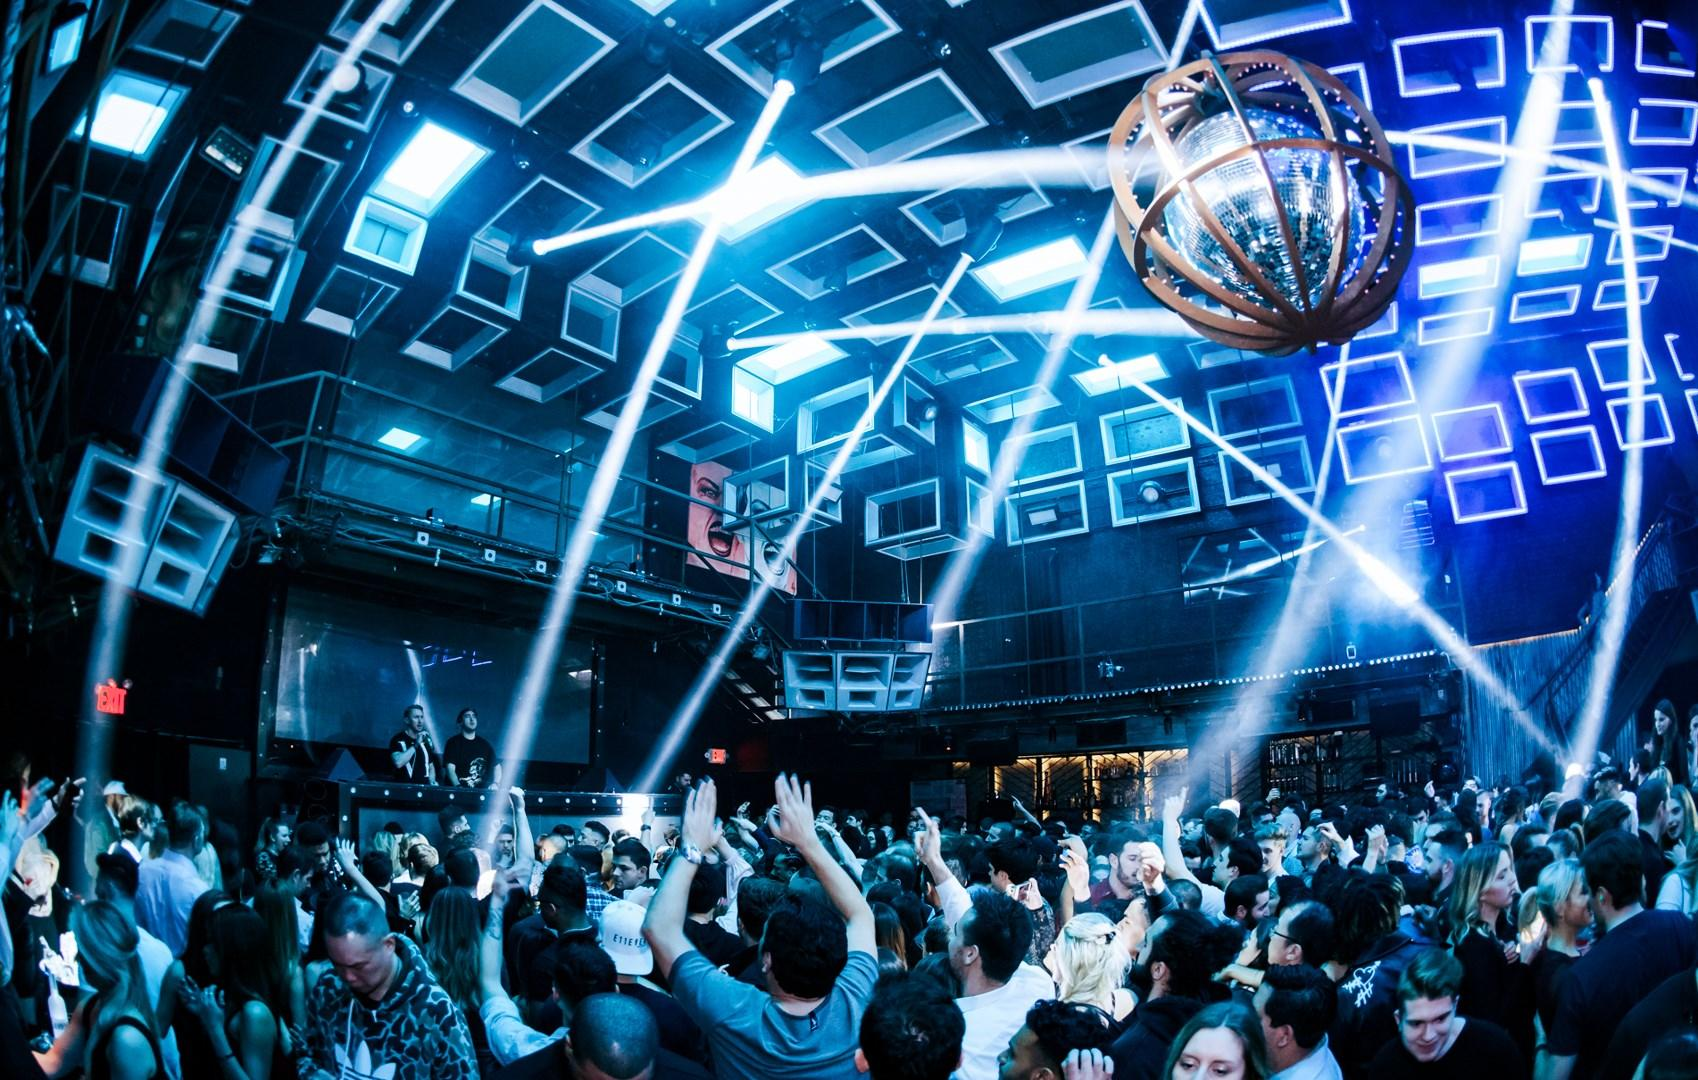 New York City Party Tonight ; Enter The Best Parties in NYC Tonight